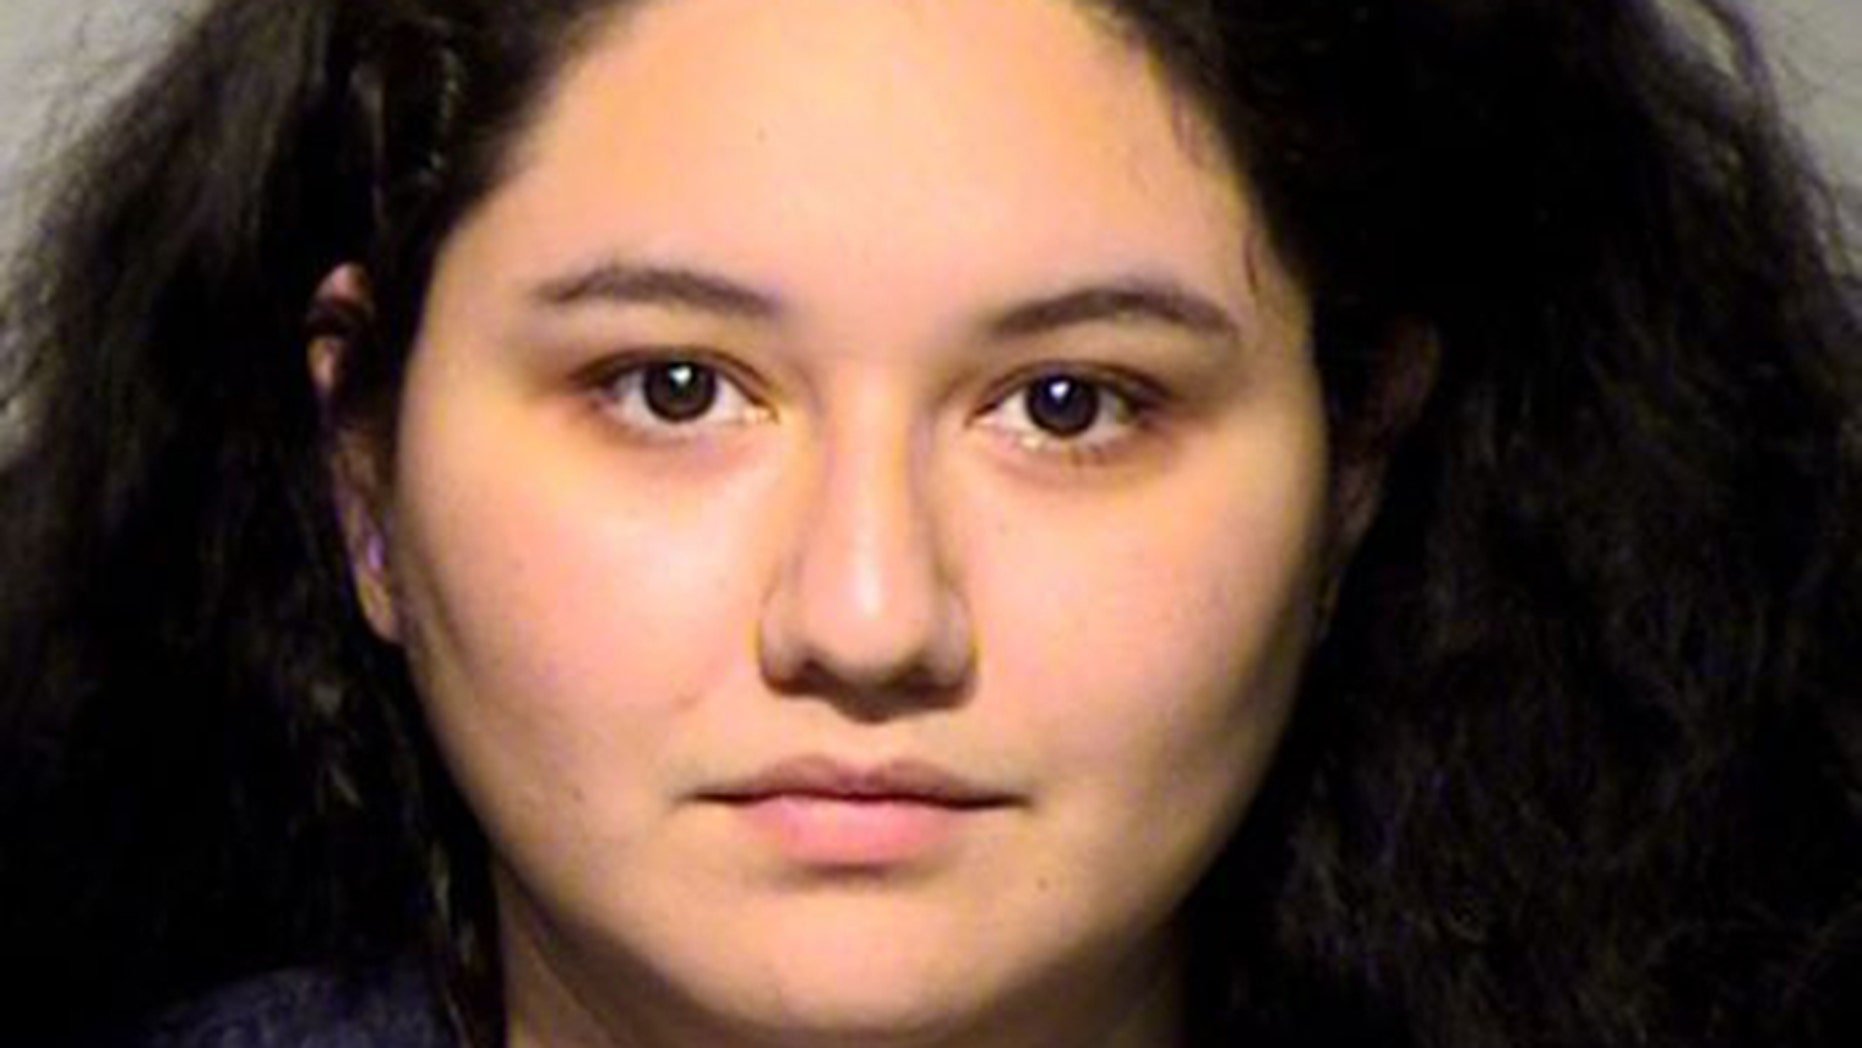 Katherine R. Gonzalez was sentenced Thursday for having sexual contact with an 11-year-old student.